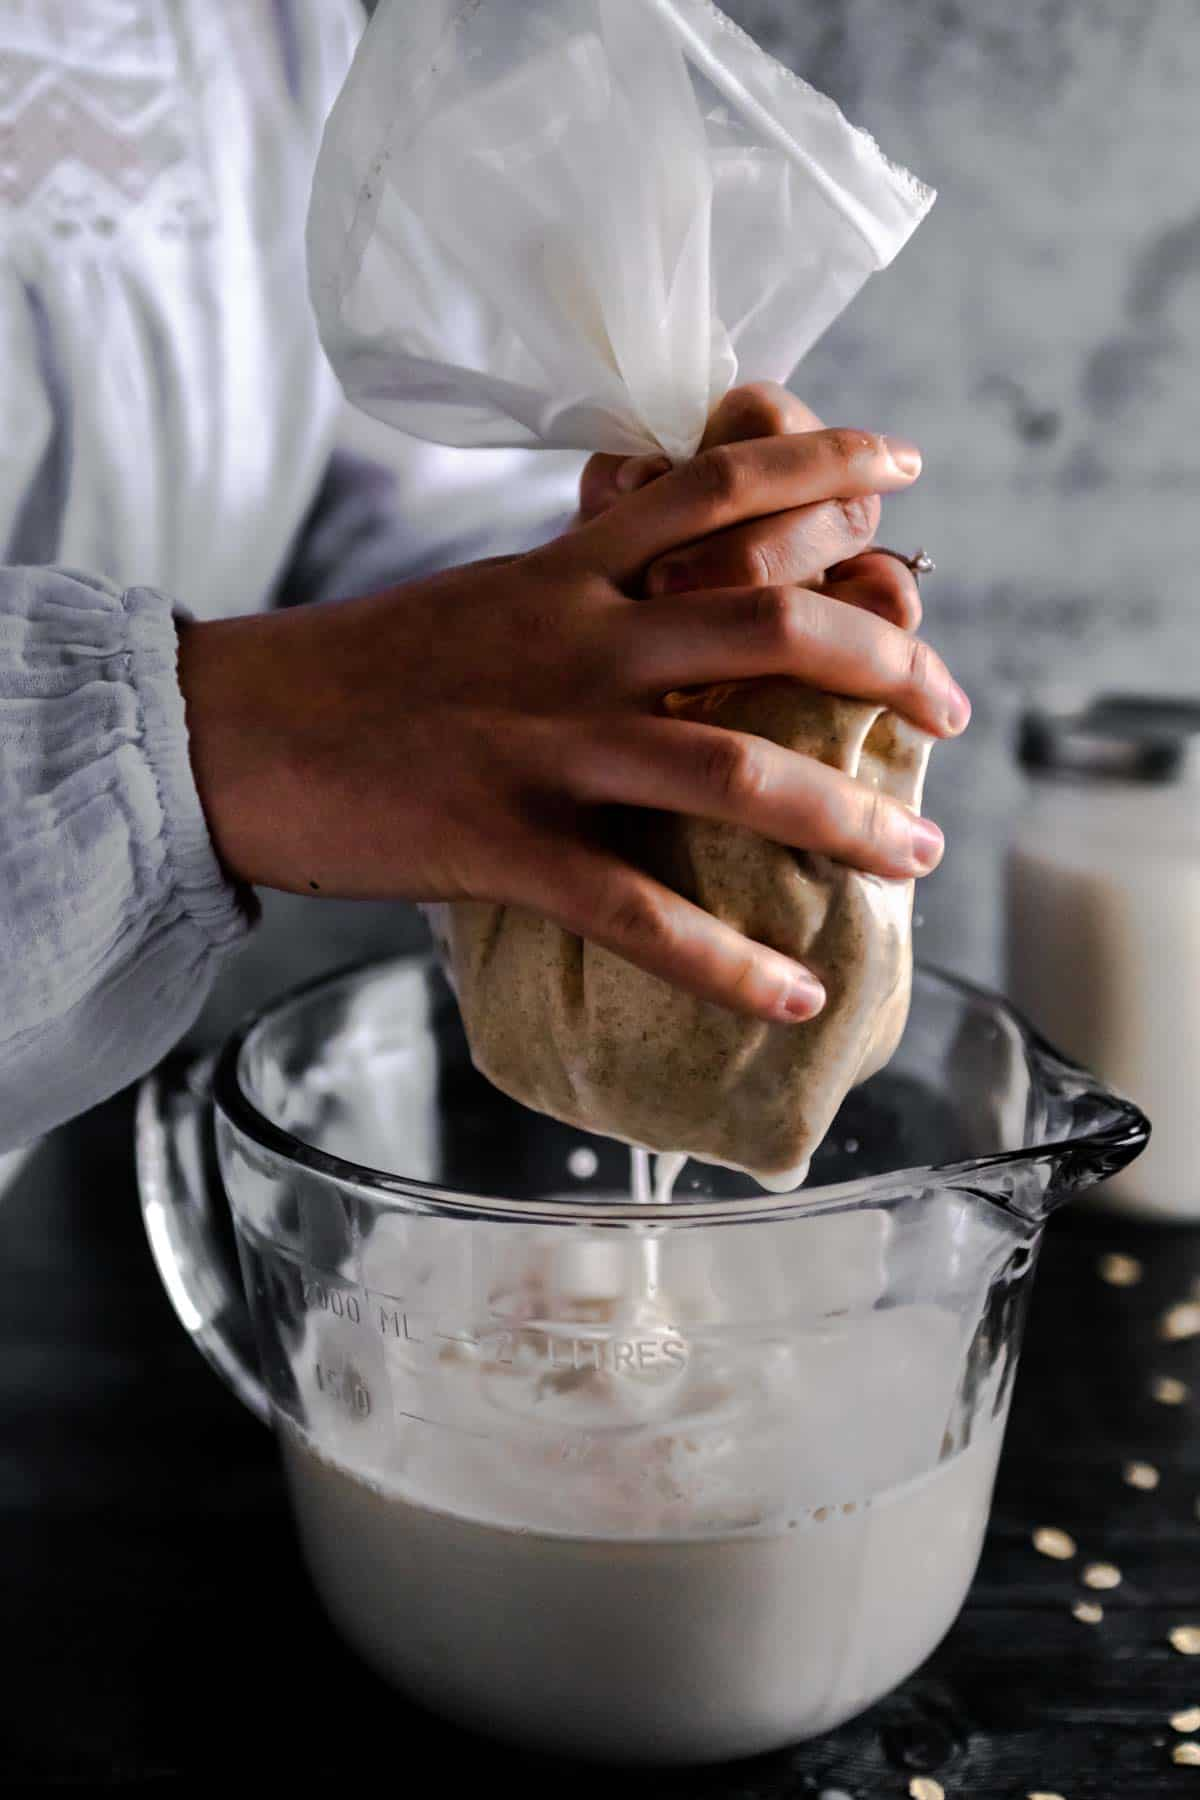 A woman gently squeezing oat milk through a nut bag and into a large glass mixing bowl